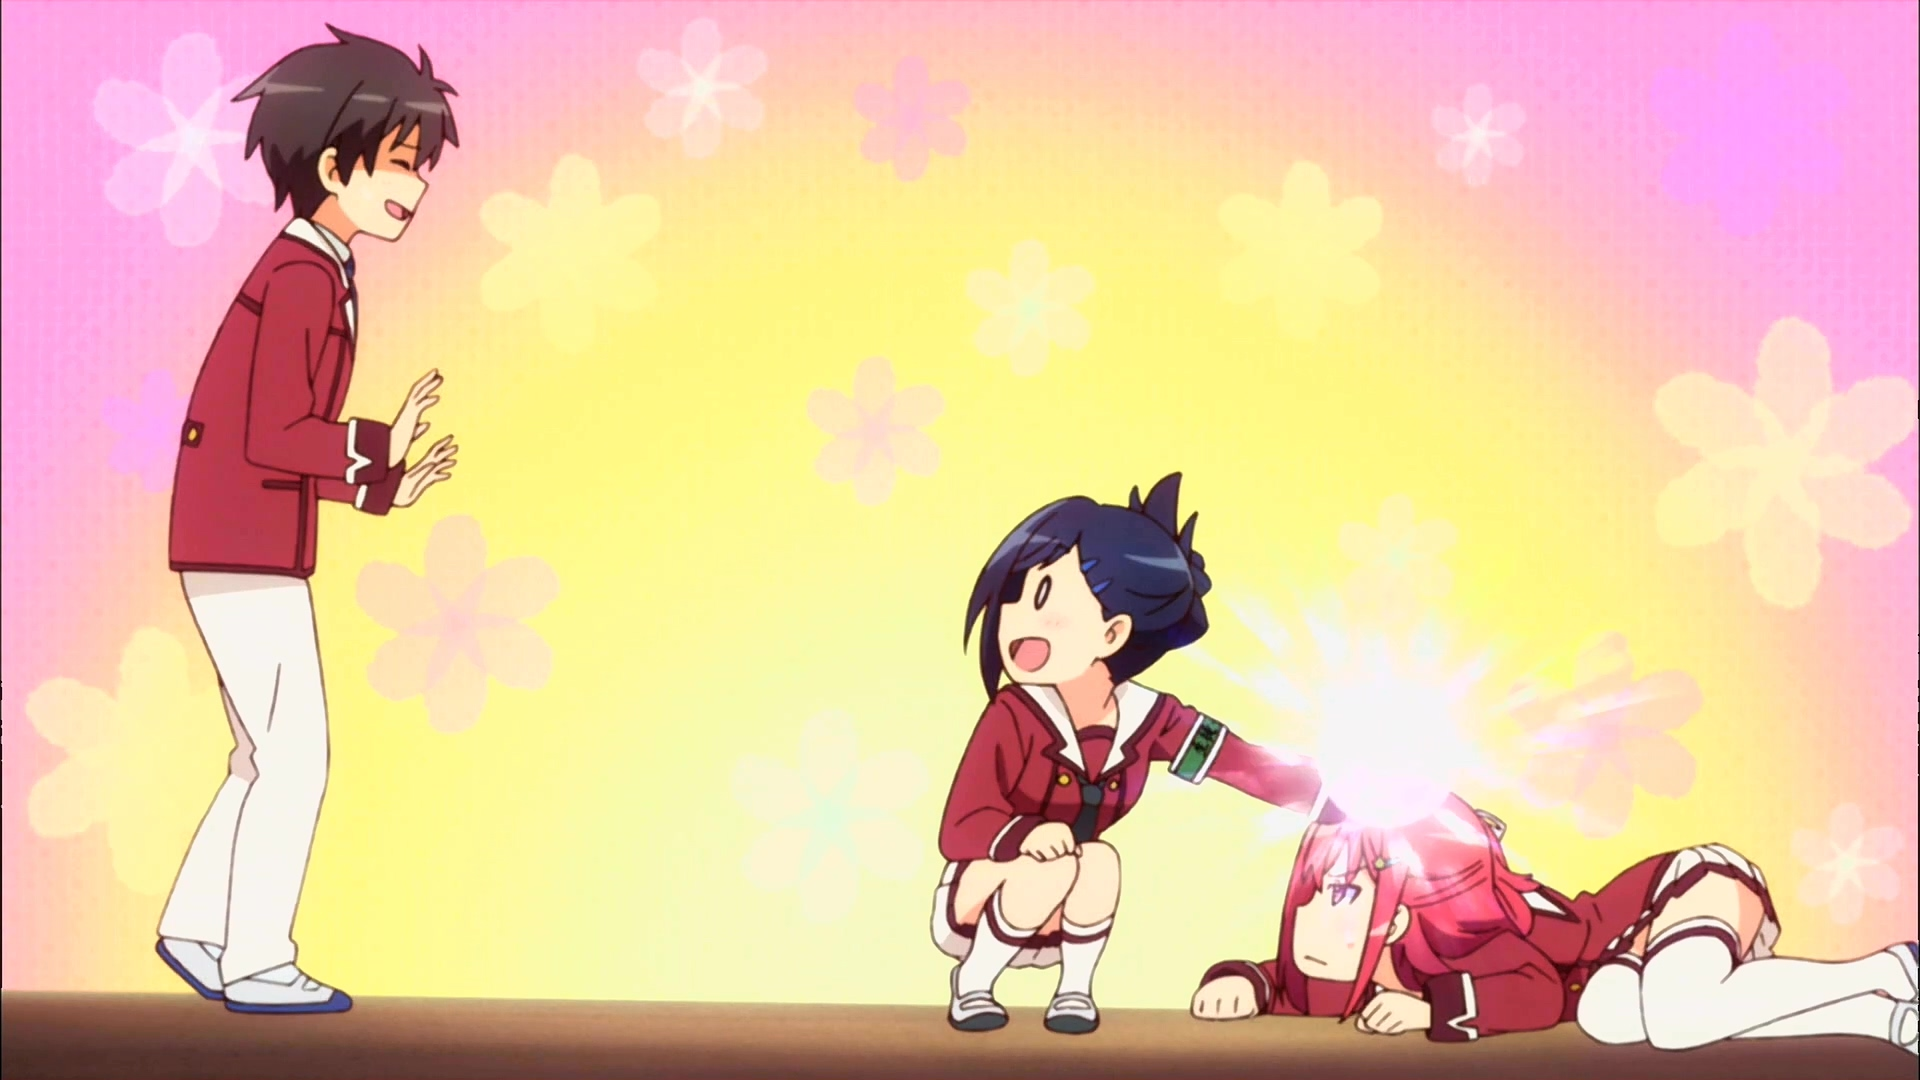 [HorribleSubs] Inou Battle wa Nichijou-kei no Naka de - 02 [1080p].mkv_20141019_005314.125.jpg